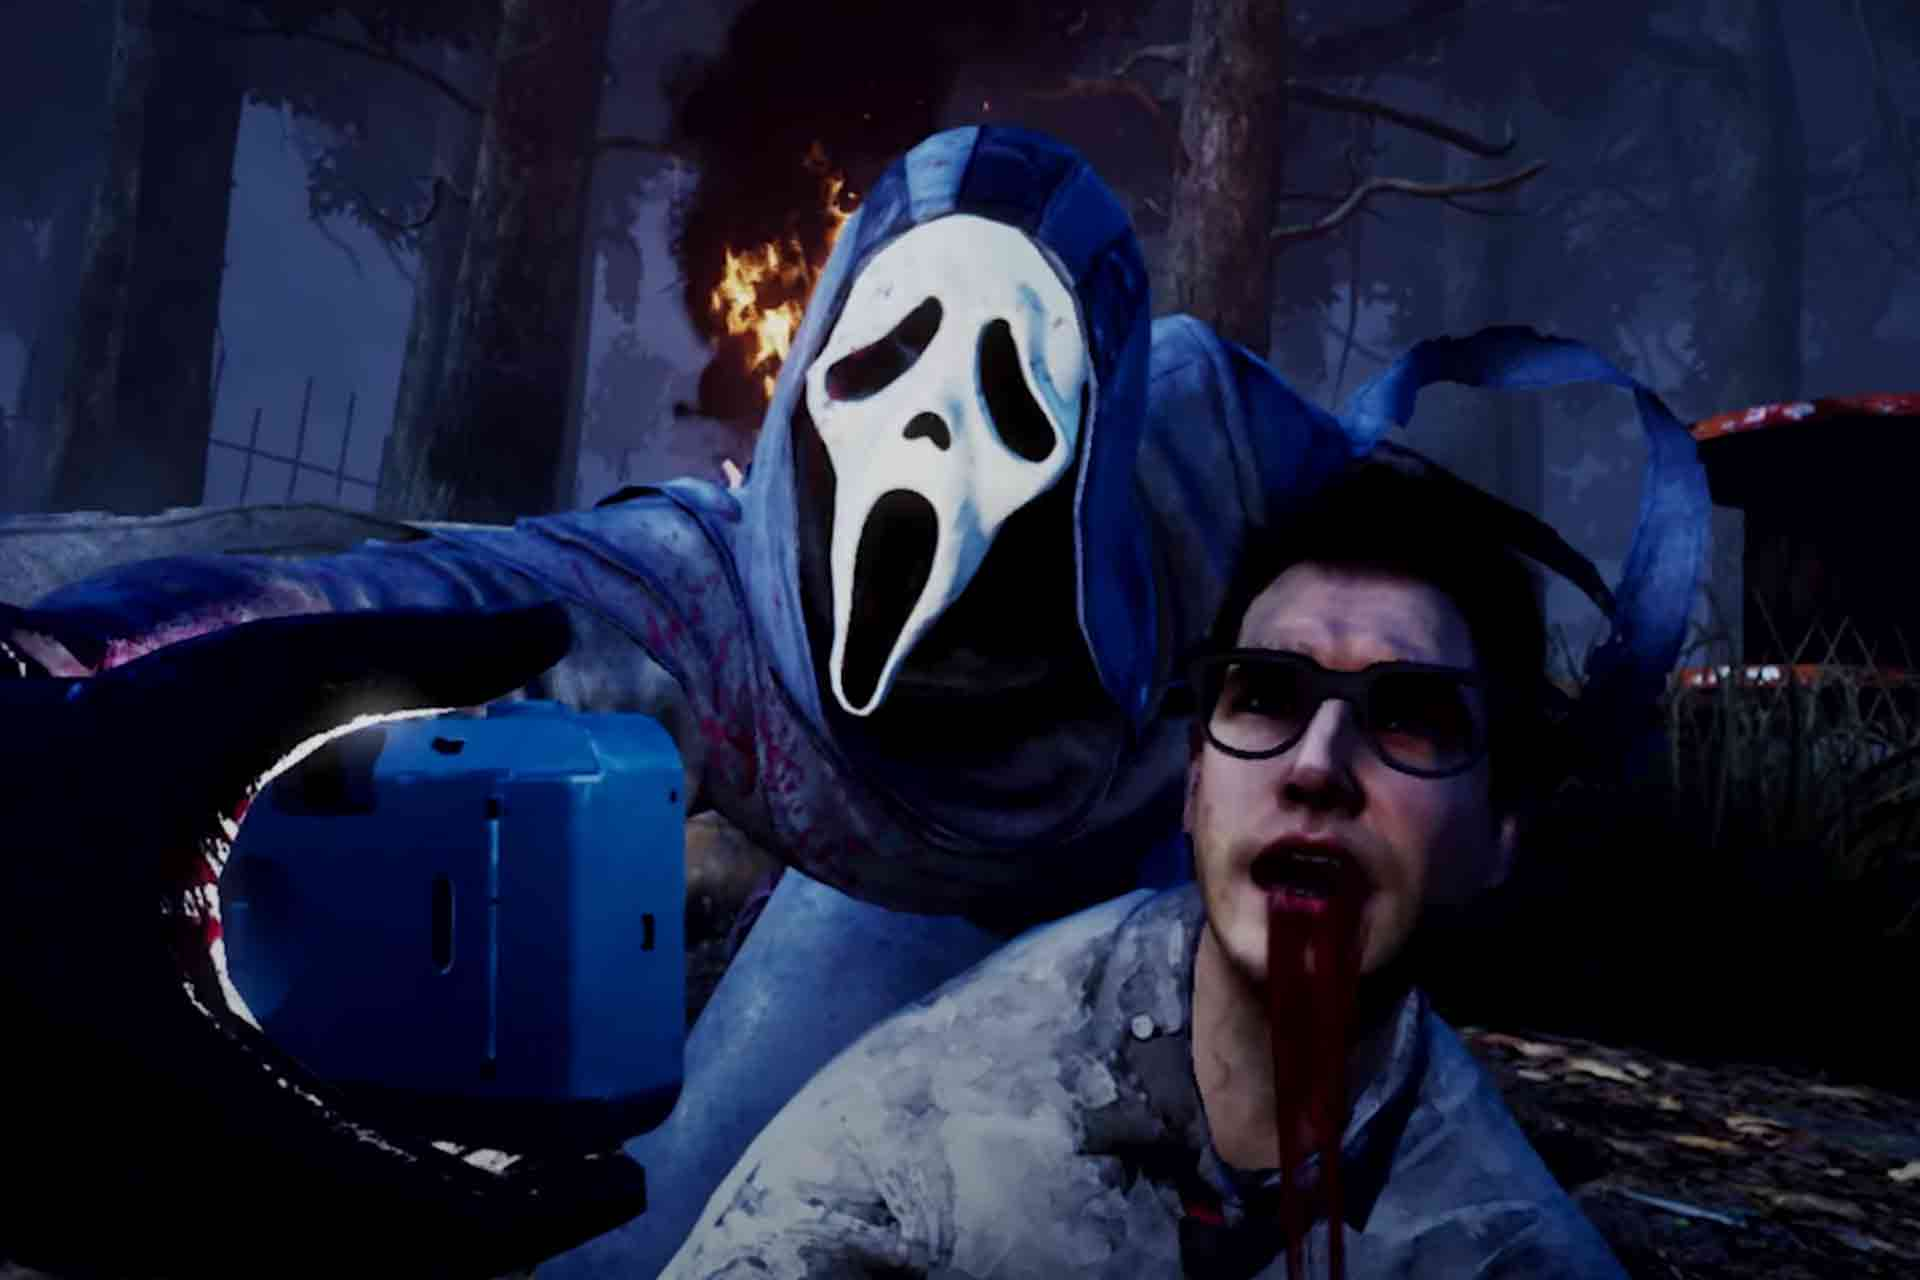 Ghost Face character from the Scream series is a killer character in Dead by Daylight game.